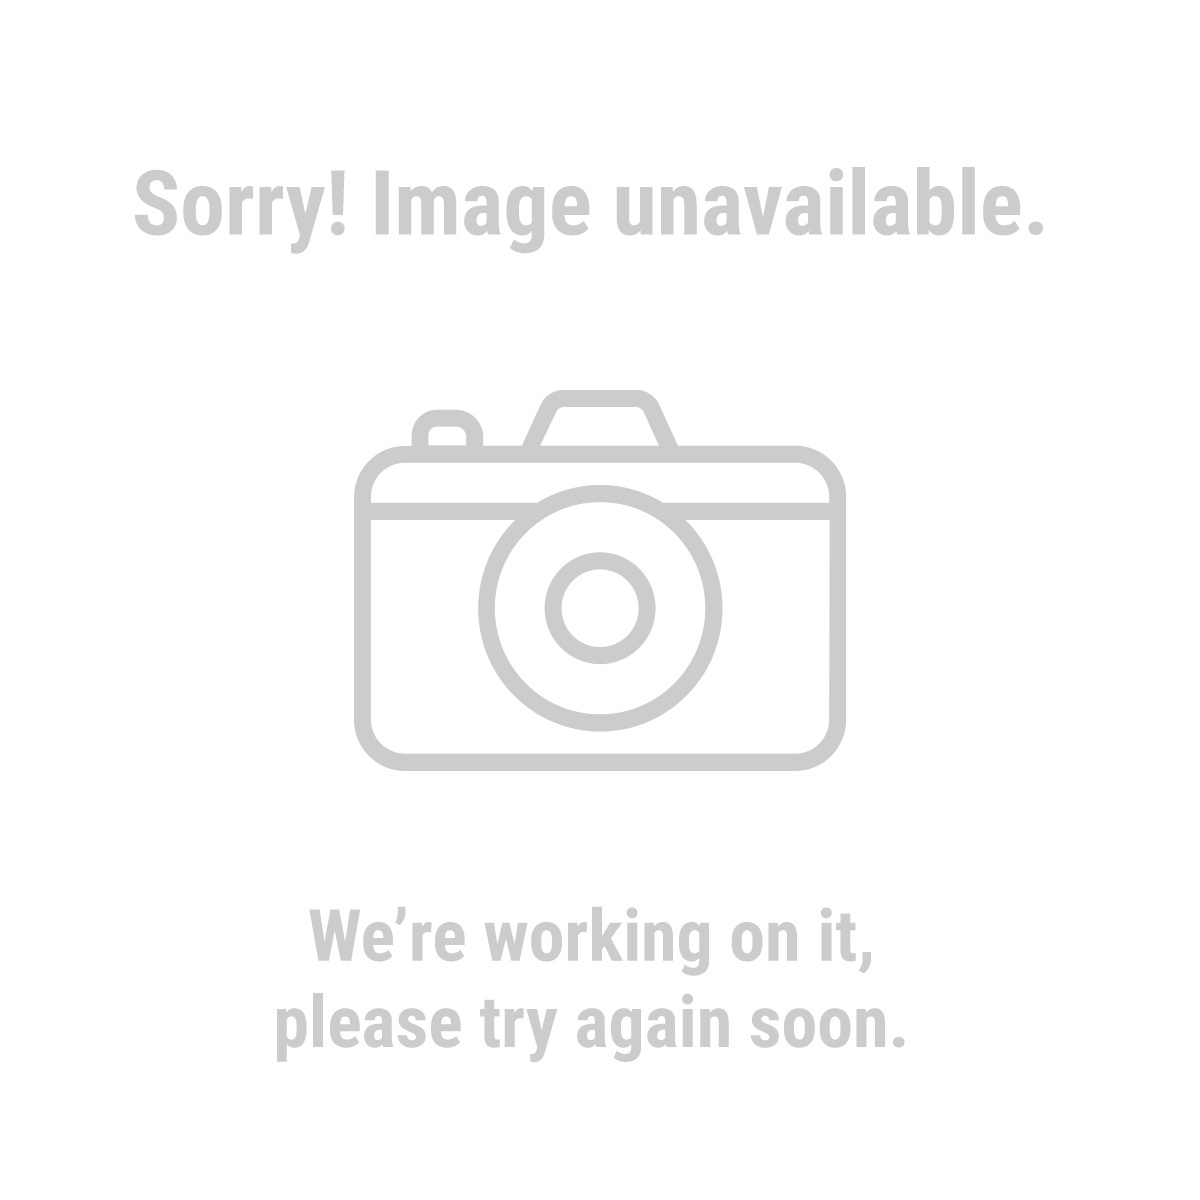 "Central Forge 92308 1-1/2"" Double Wheel Rope Pulley, 2 Piece Set"